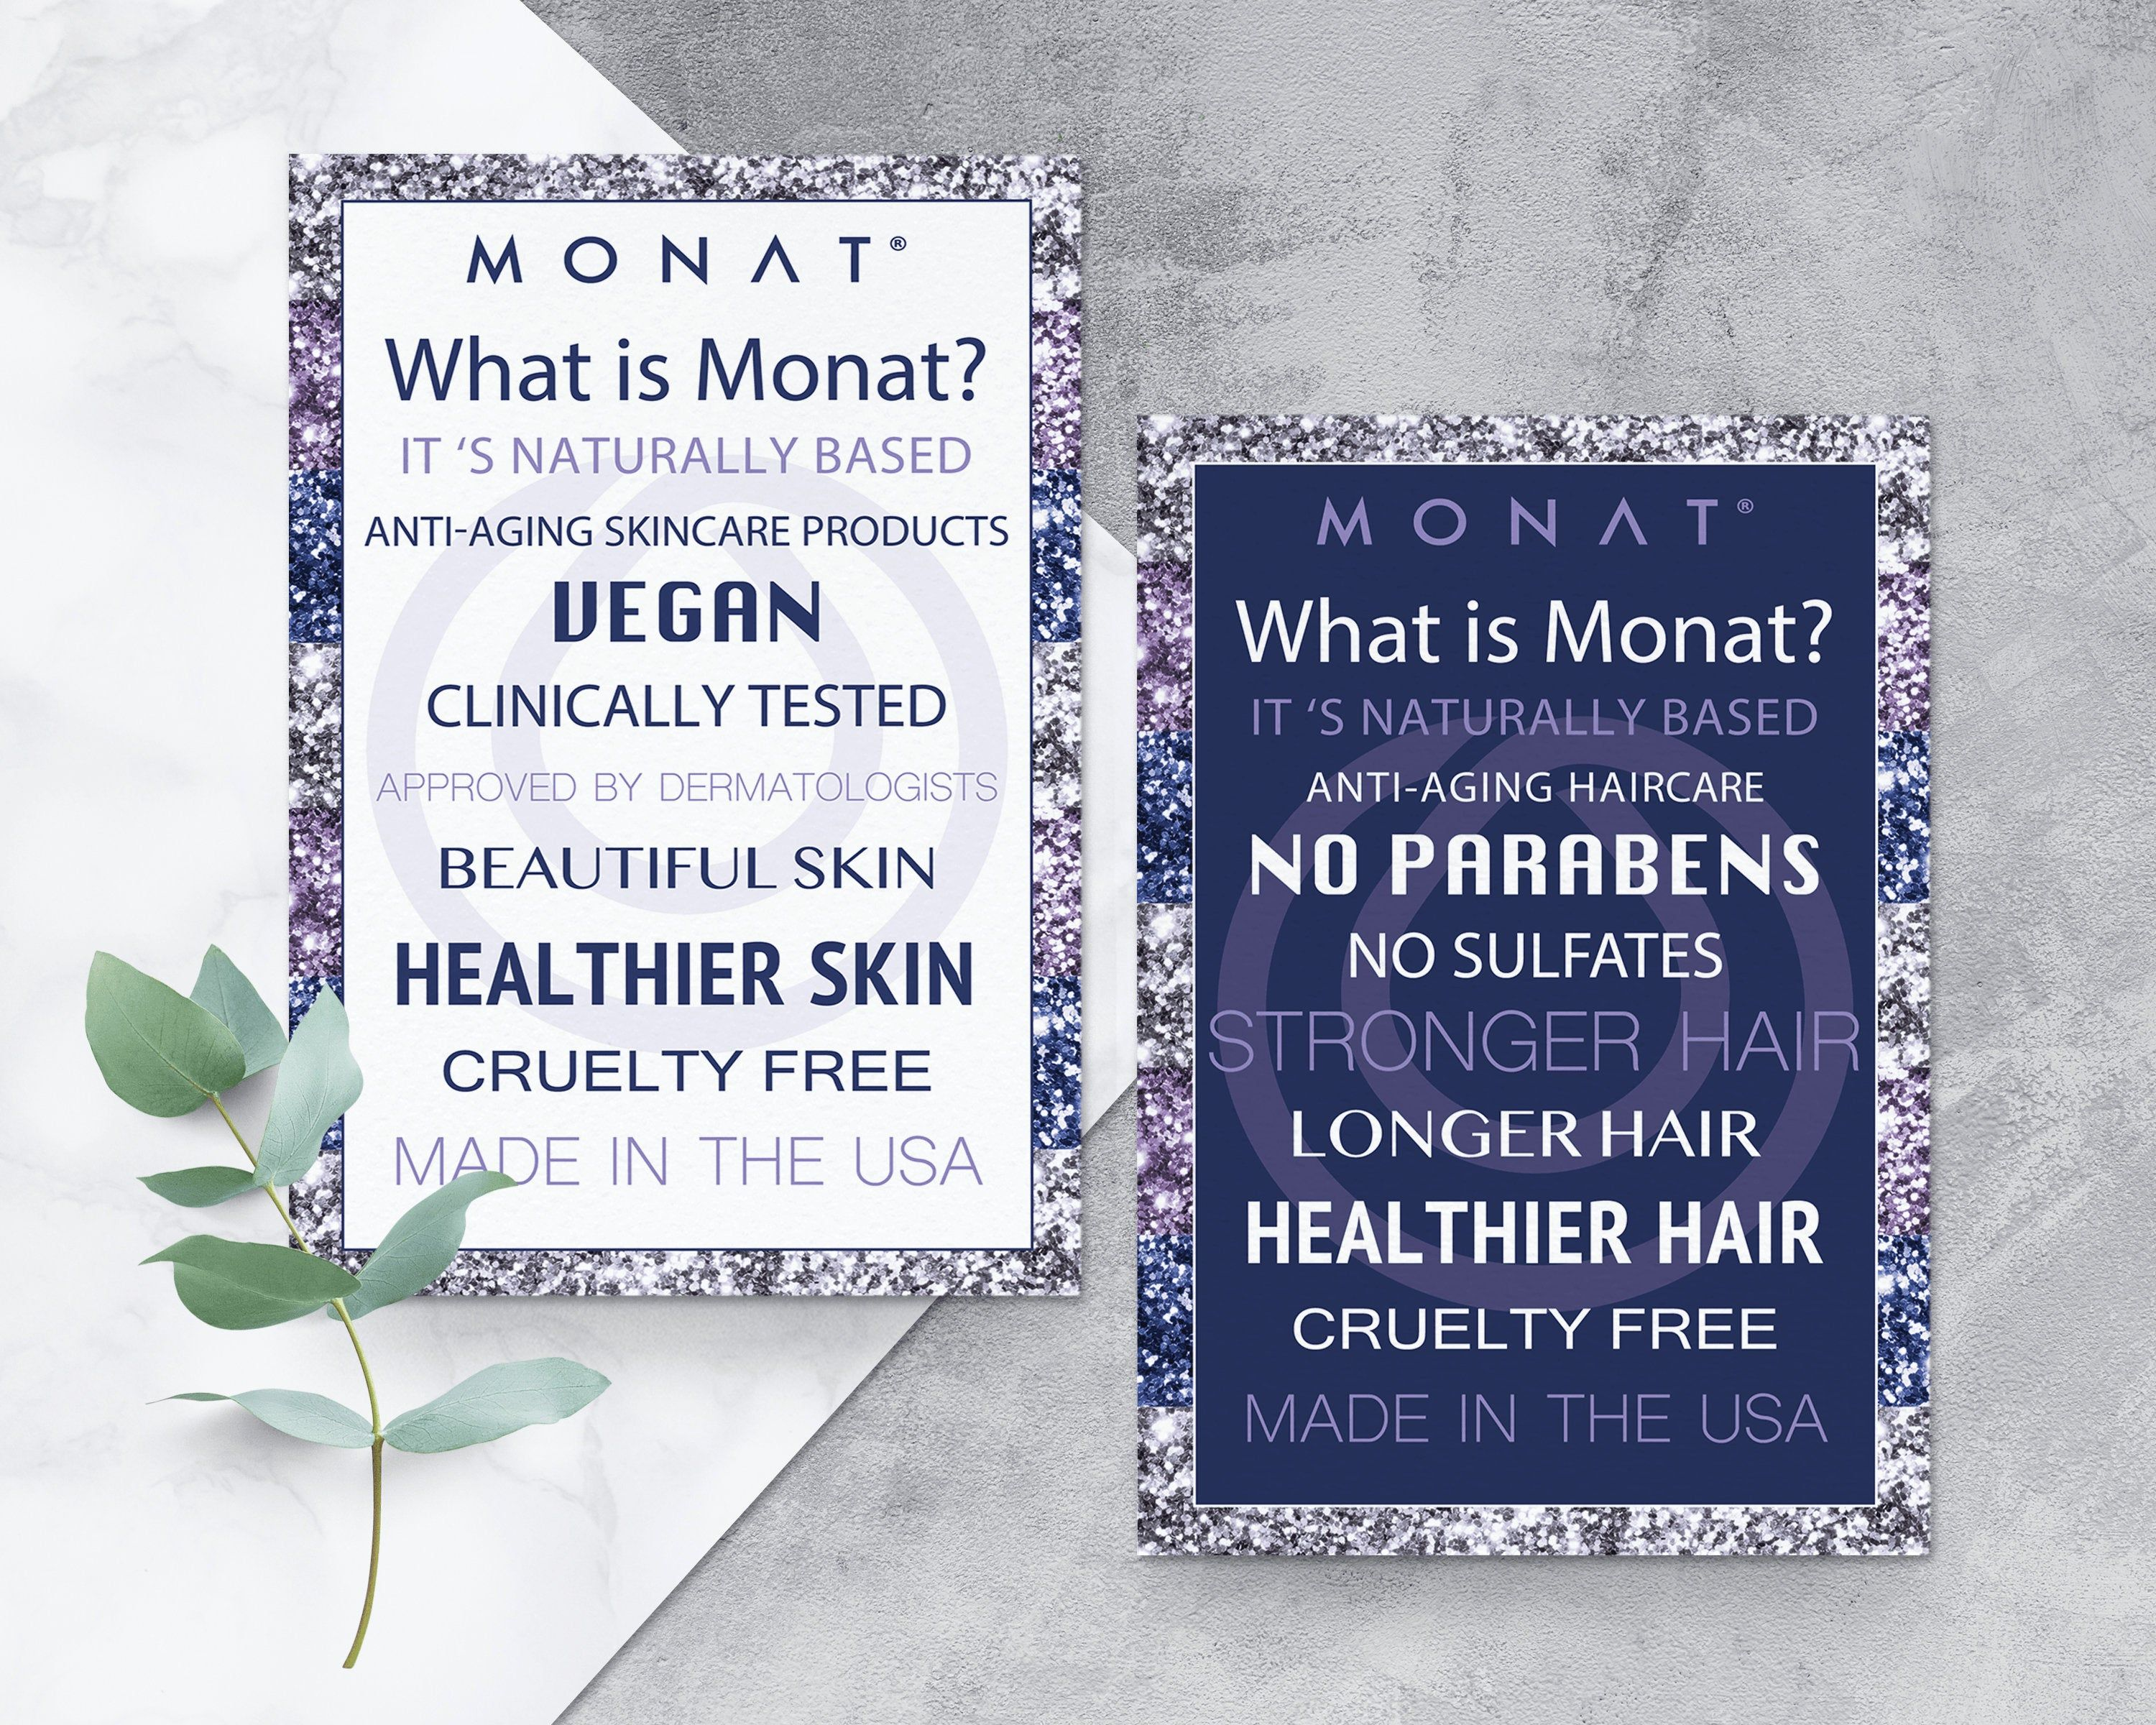 What Is Monat Flyer Monat Skincare Info Card Monat Haircare Etsy In 2020 Monat My Monat Skin Care